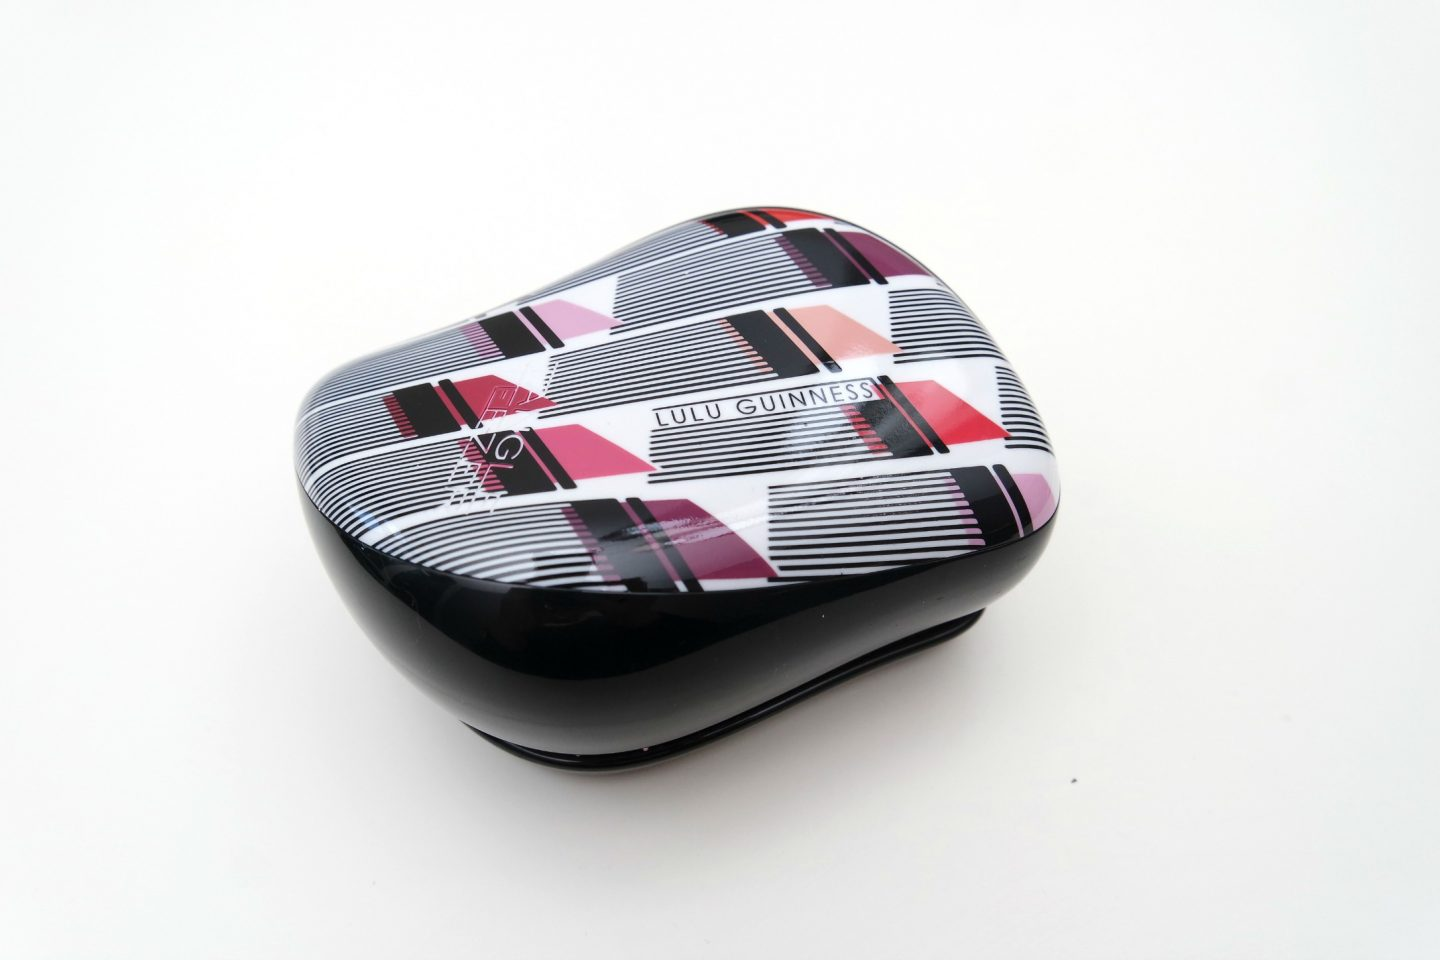 Tangle Teezer Compact Styler designed by Lulu Guinness